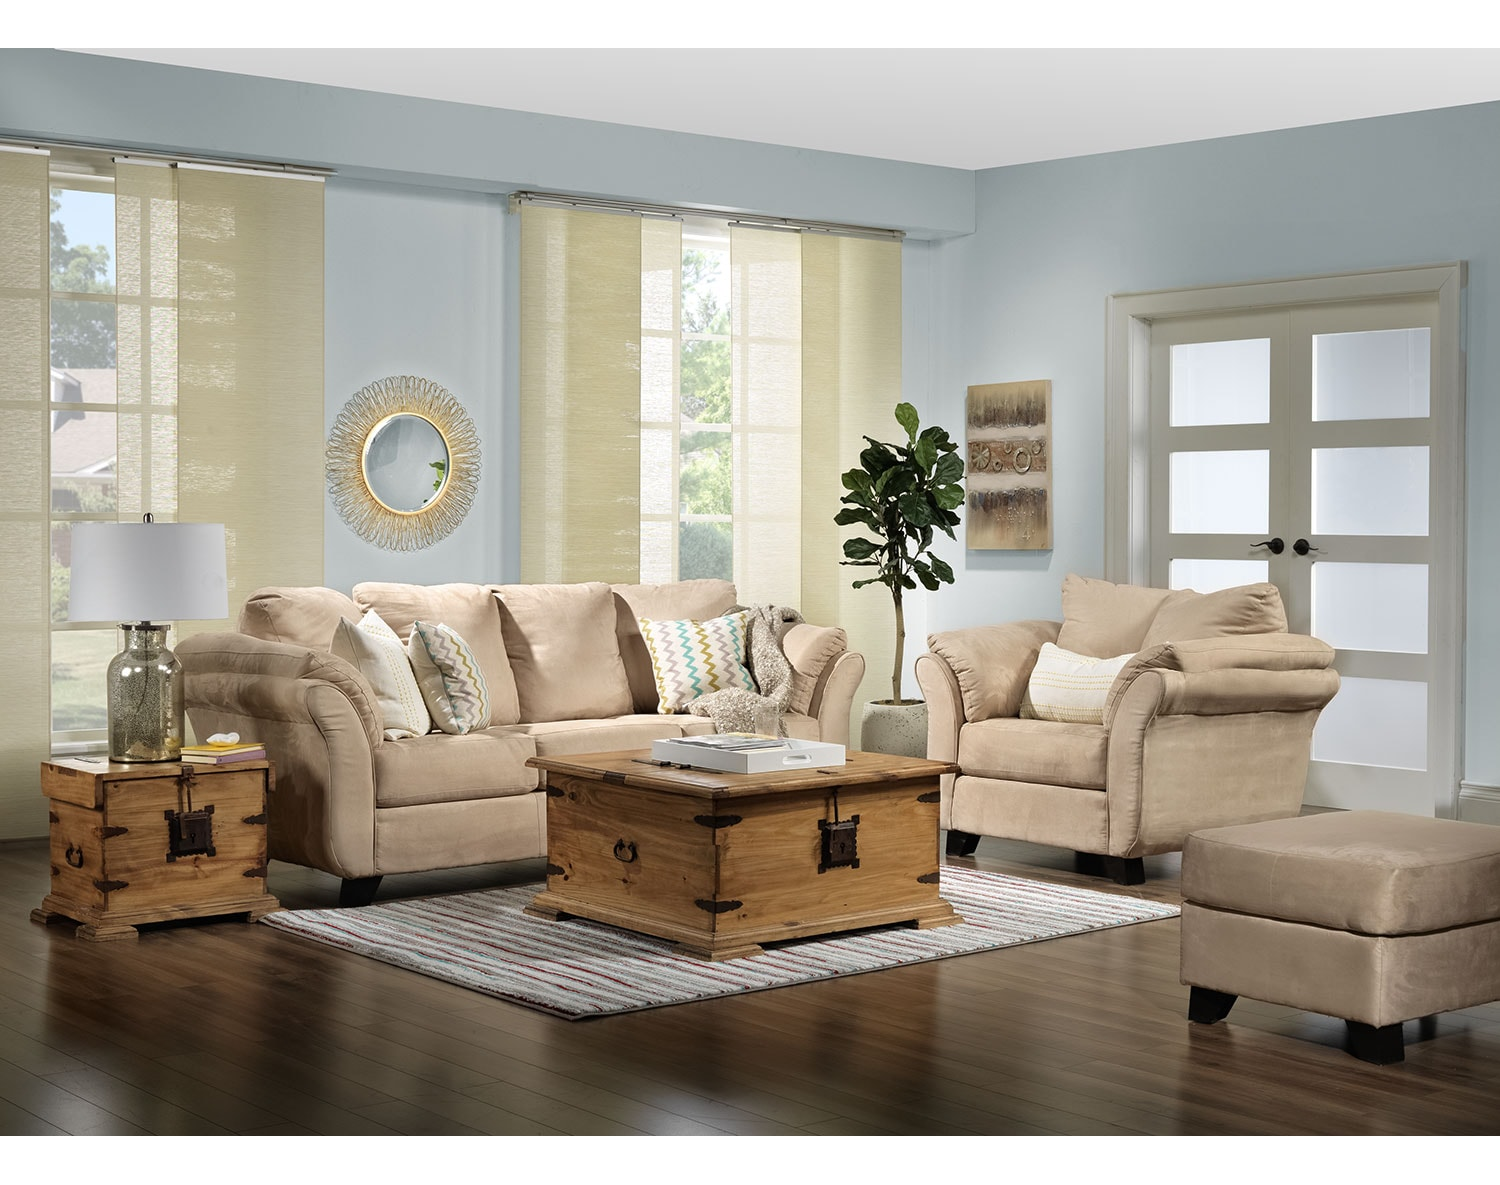 Living Room Collections Canada  Leon's. Nice Living Room Paint Colors. Pier 1 Living Room. Beyonce Living Room. Best Colors For A Living Room. Living Rooms With Area Rugs. How To Arrange Small Living Room. Hgtv Rate My Space Living Rooms. Red And Gold Living Room